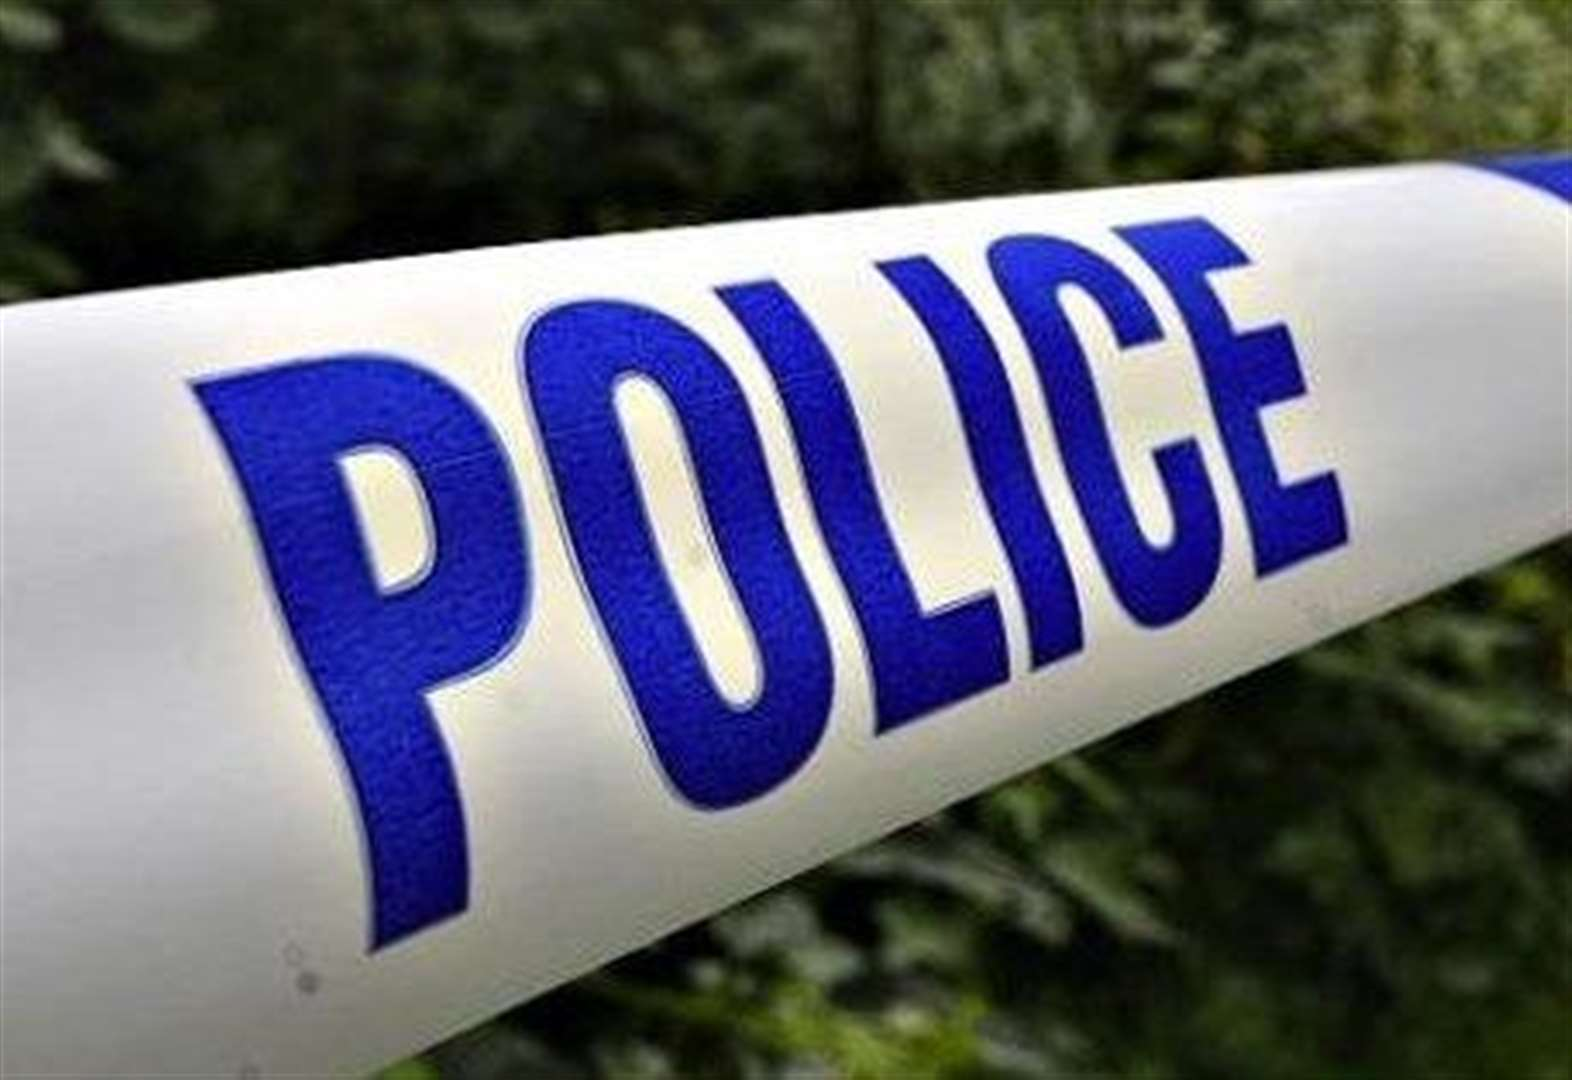 Police called after sudden death in Willingham